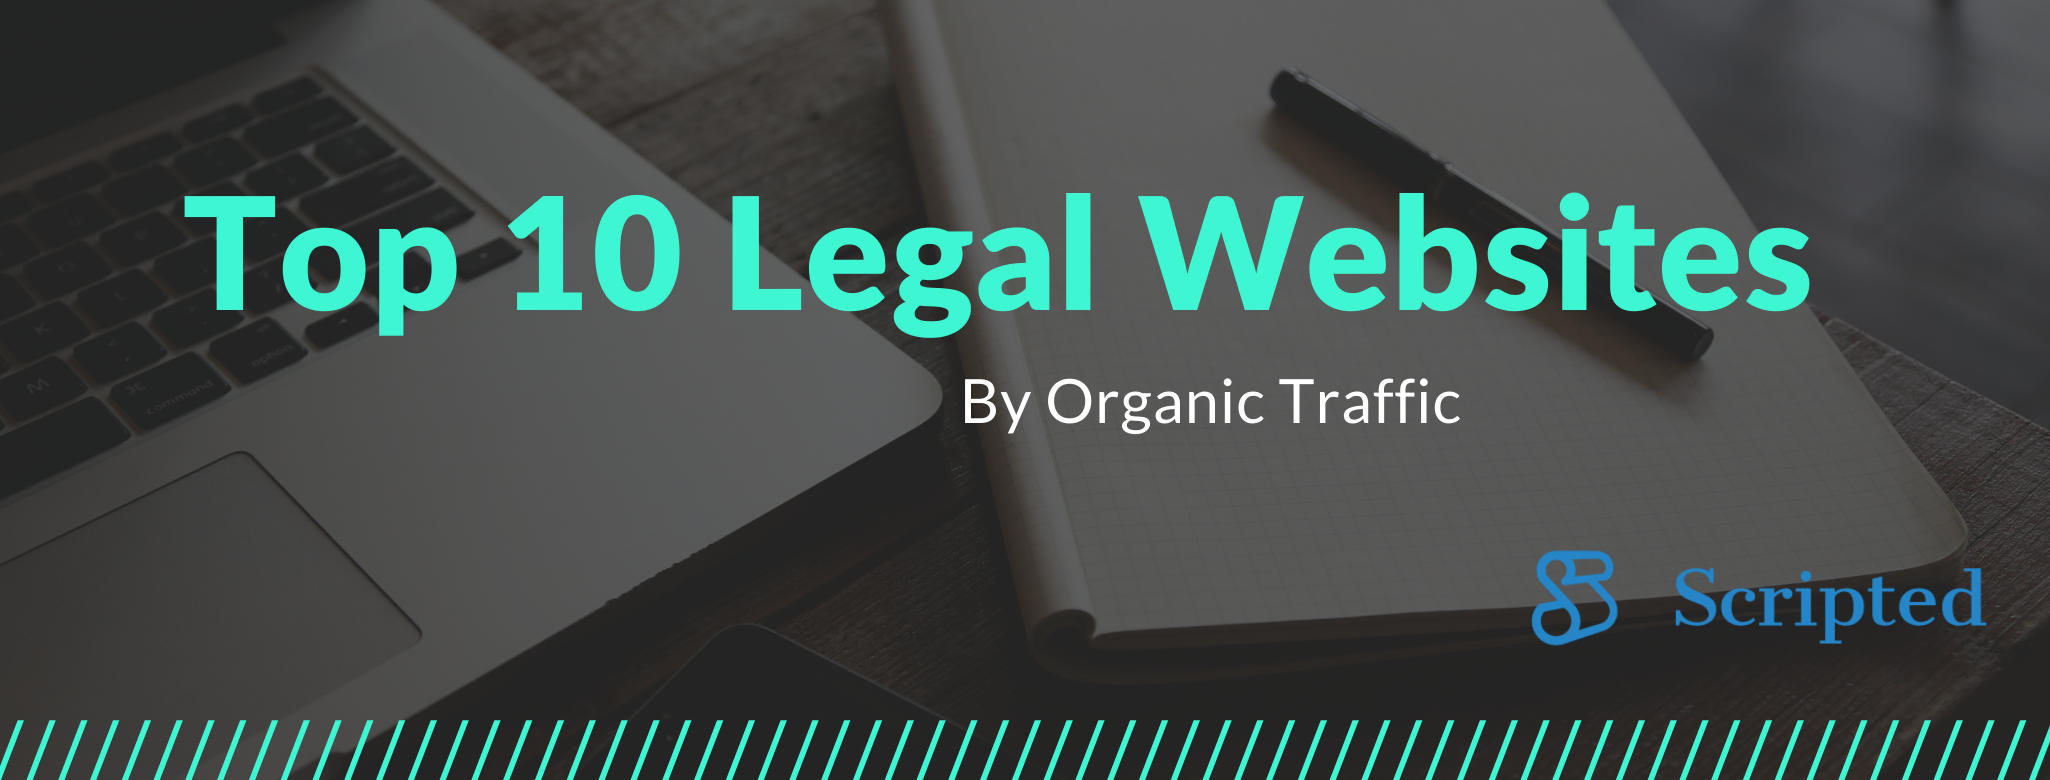 Top 10 Legal Websites by Traffic